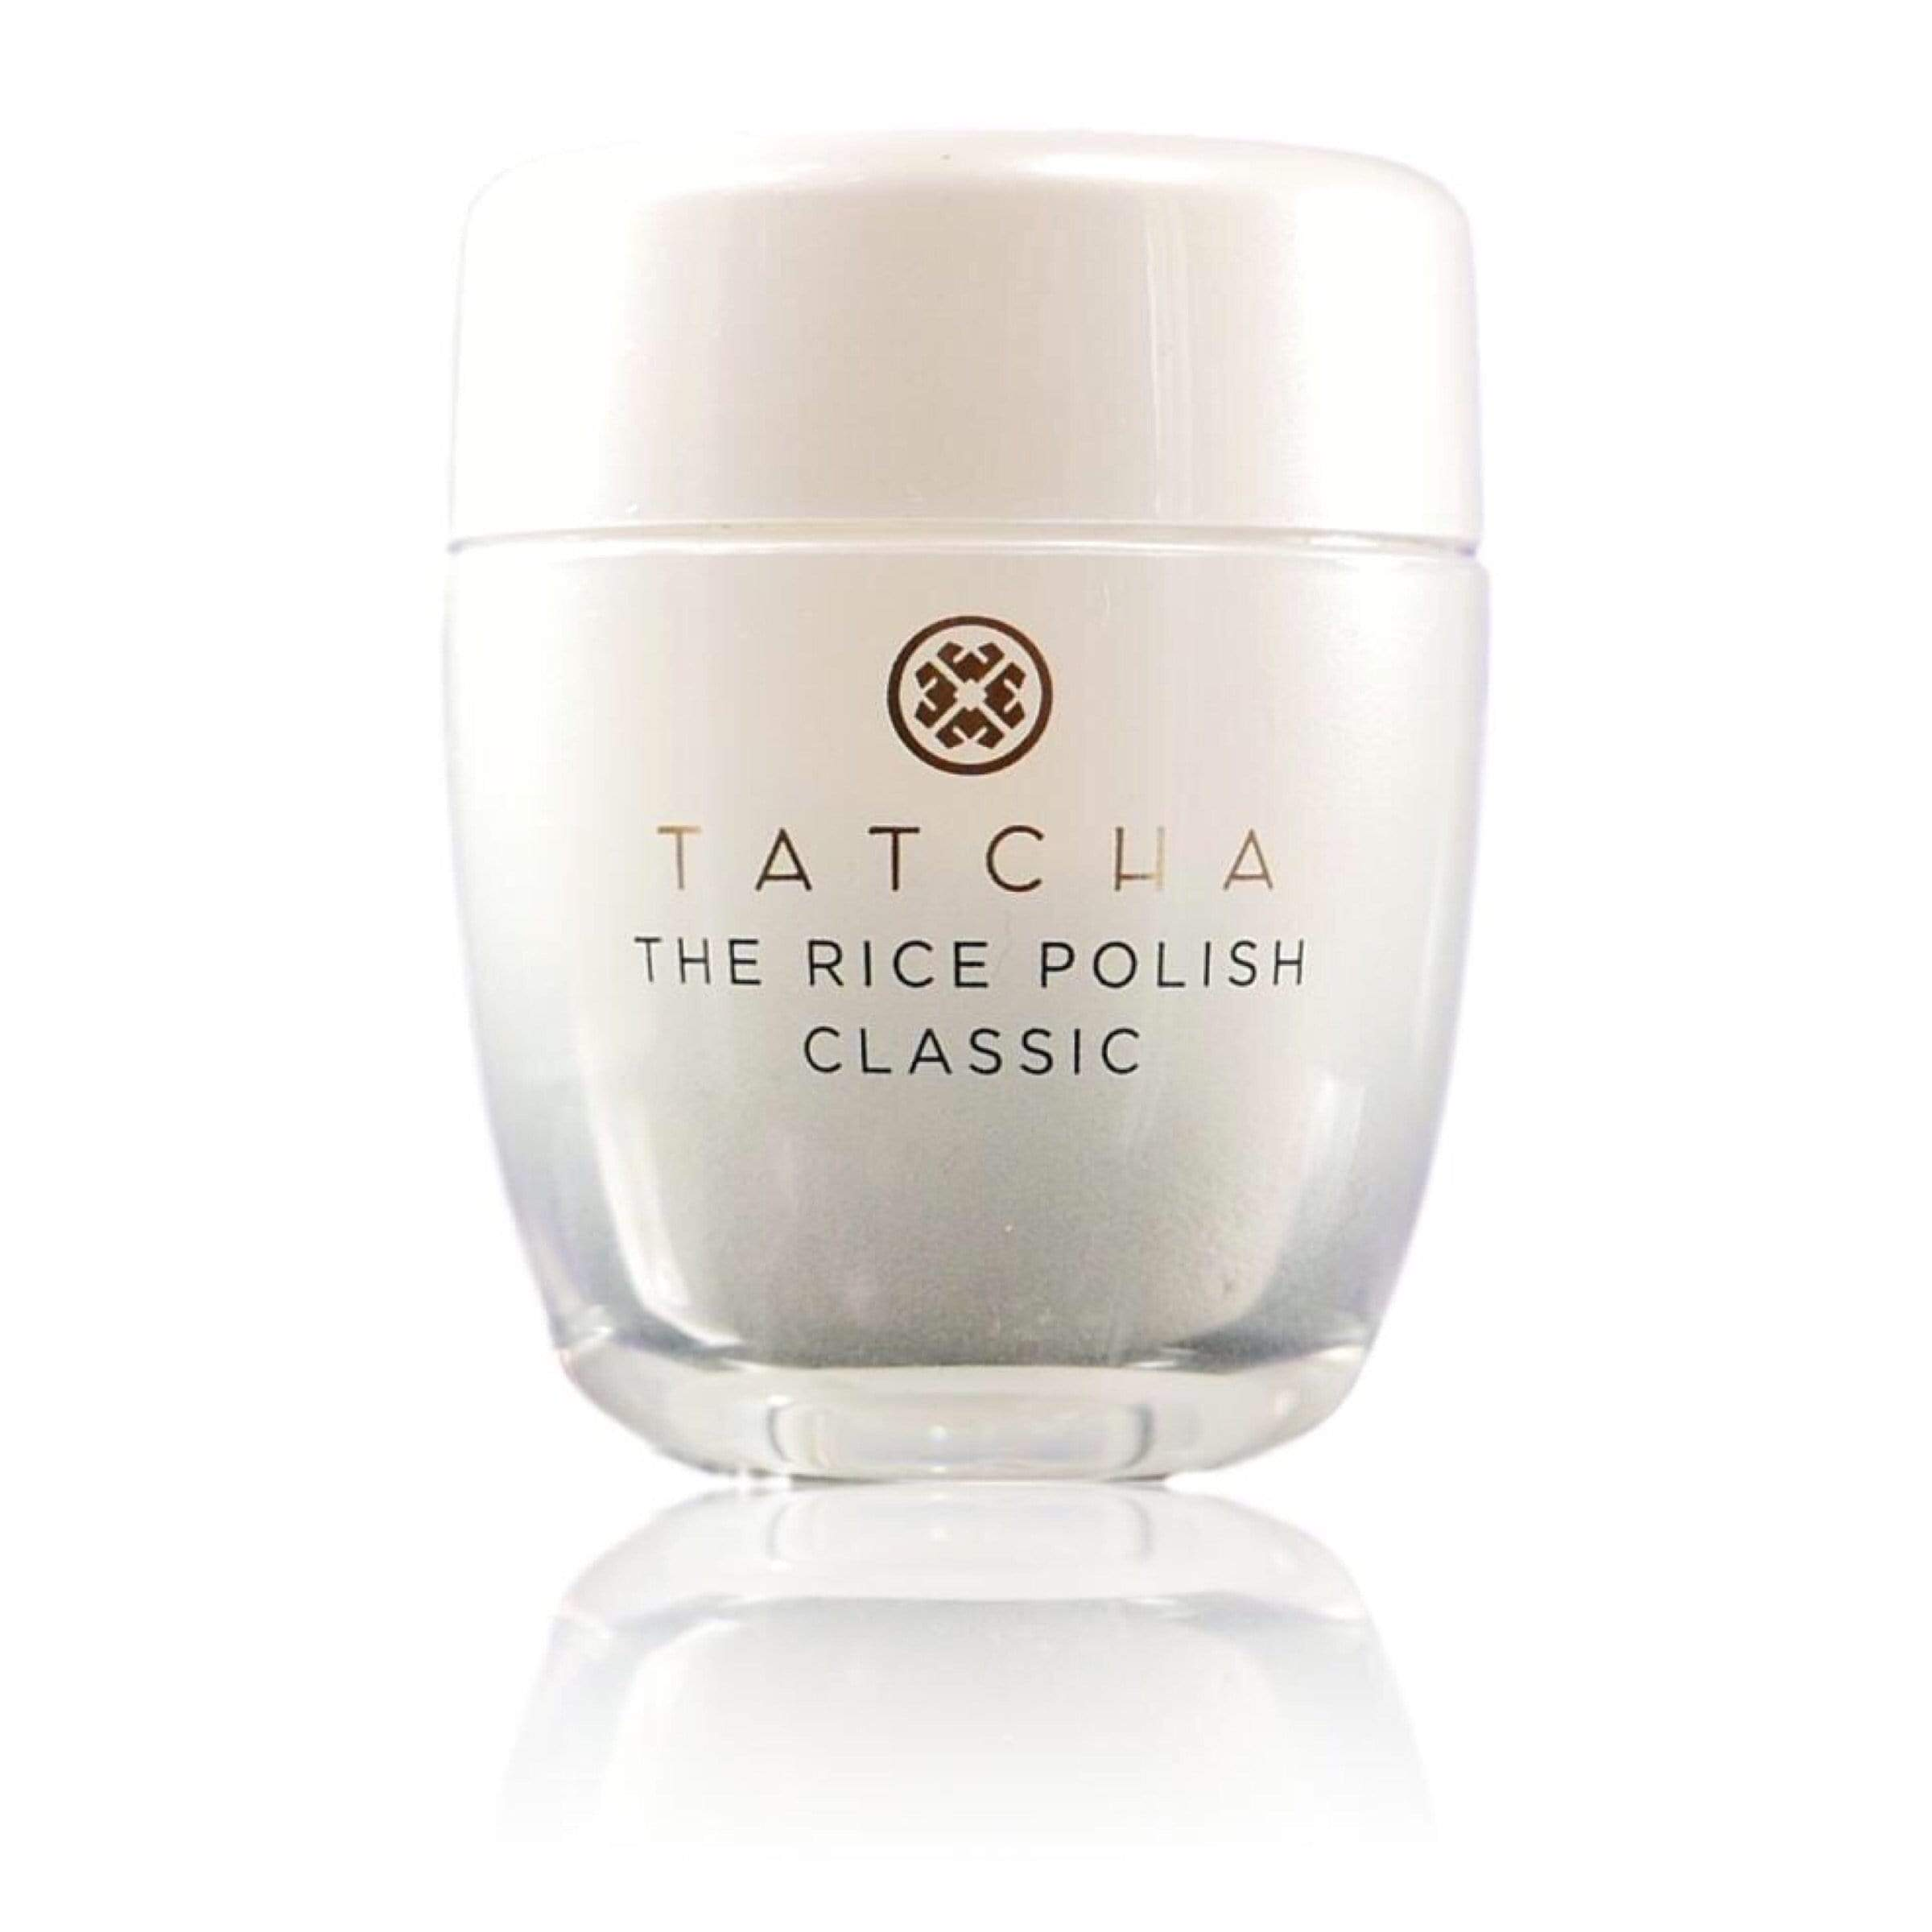 Tatcha The Rice Polish - Classic Foaming Enzyme Powder Travel Size - Normal to Dry, 0.35oz | 10g, Skin Care, London Loves Beauty